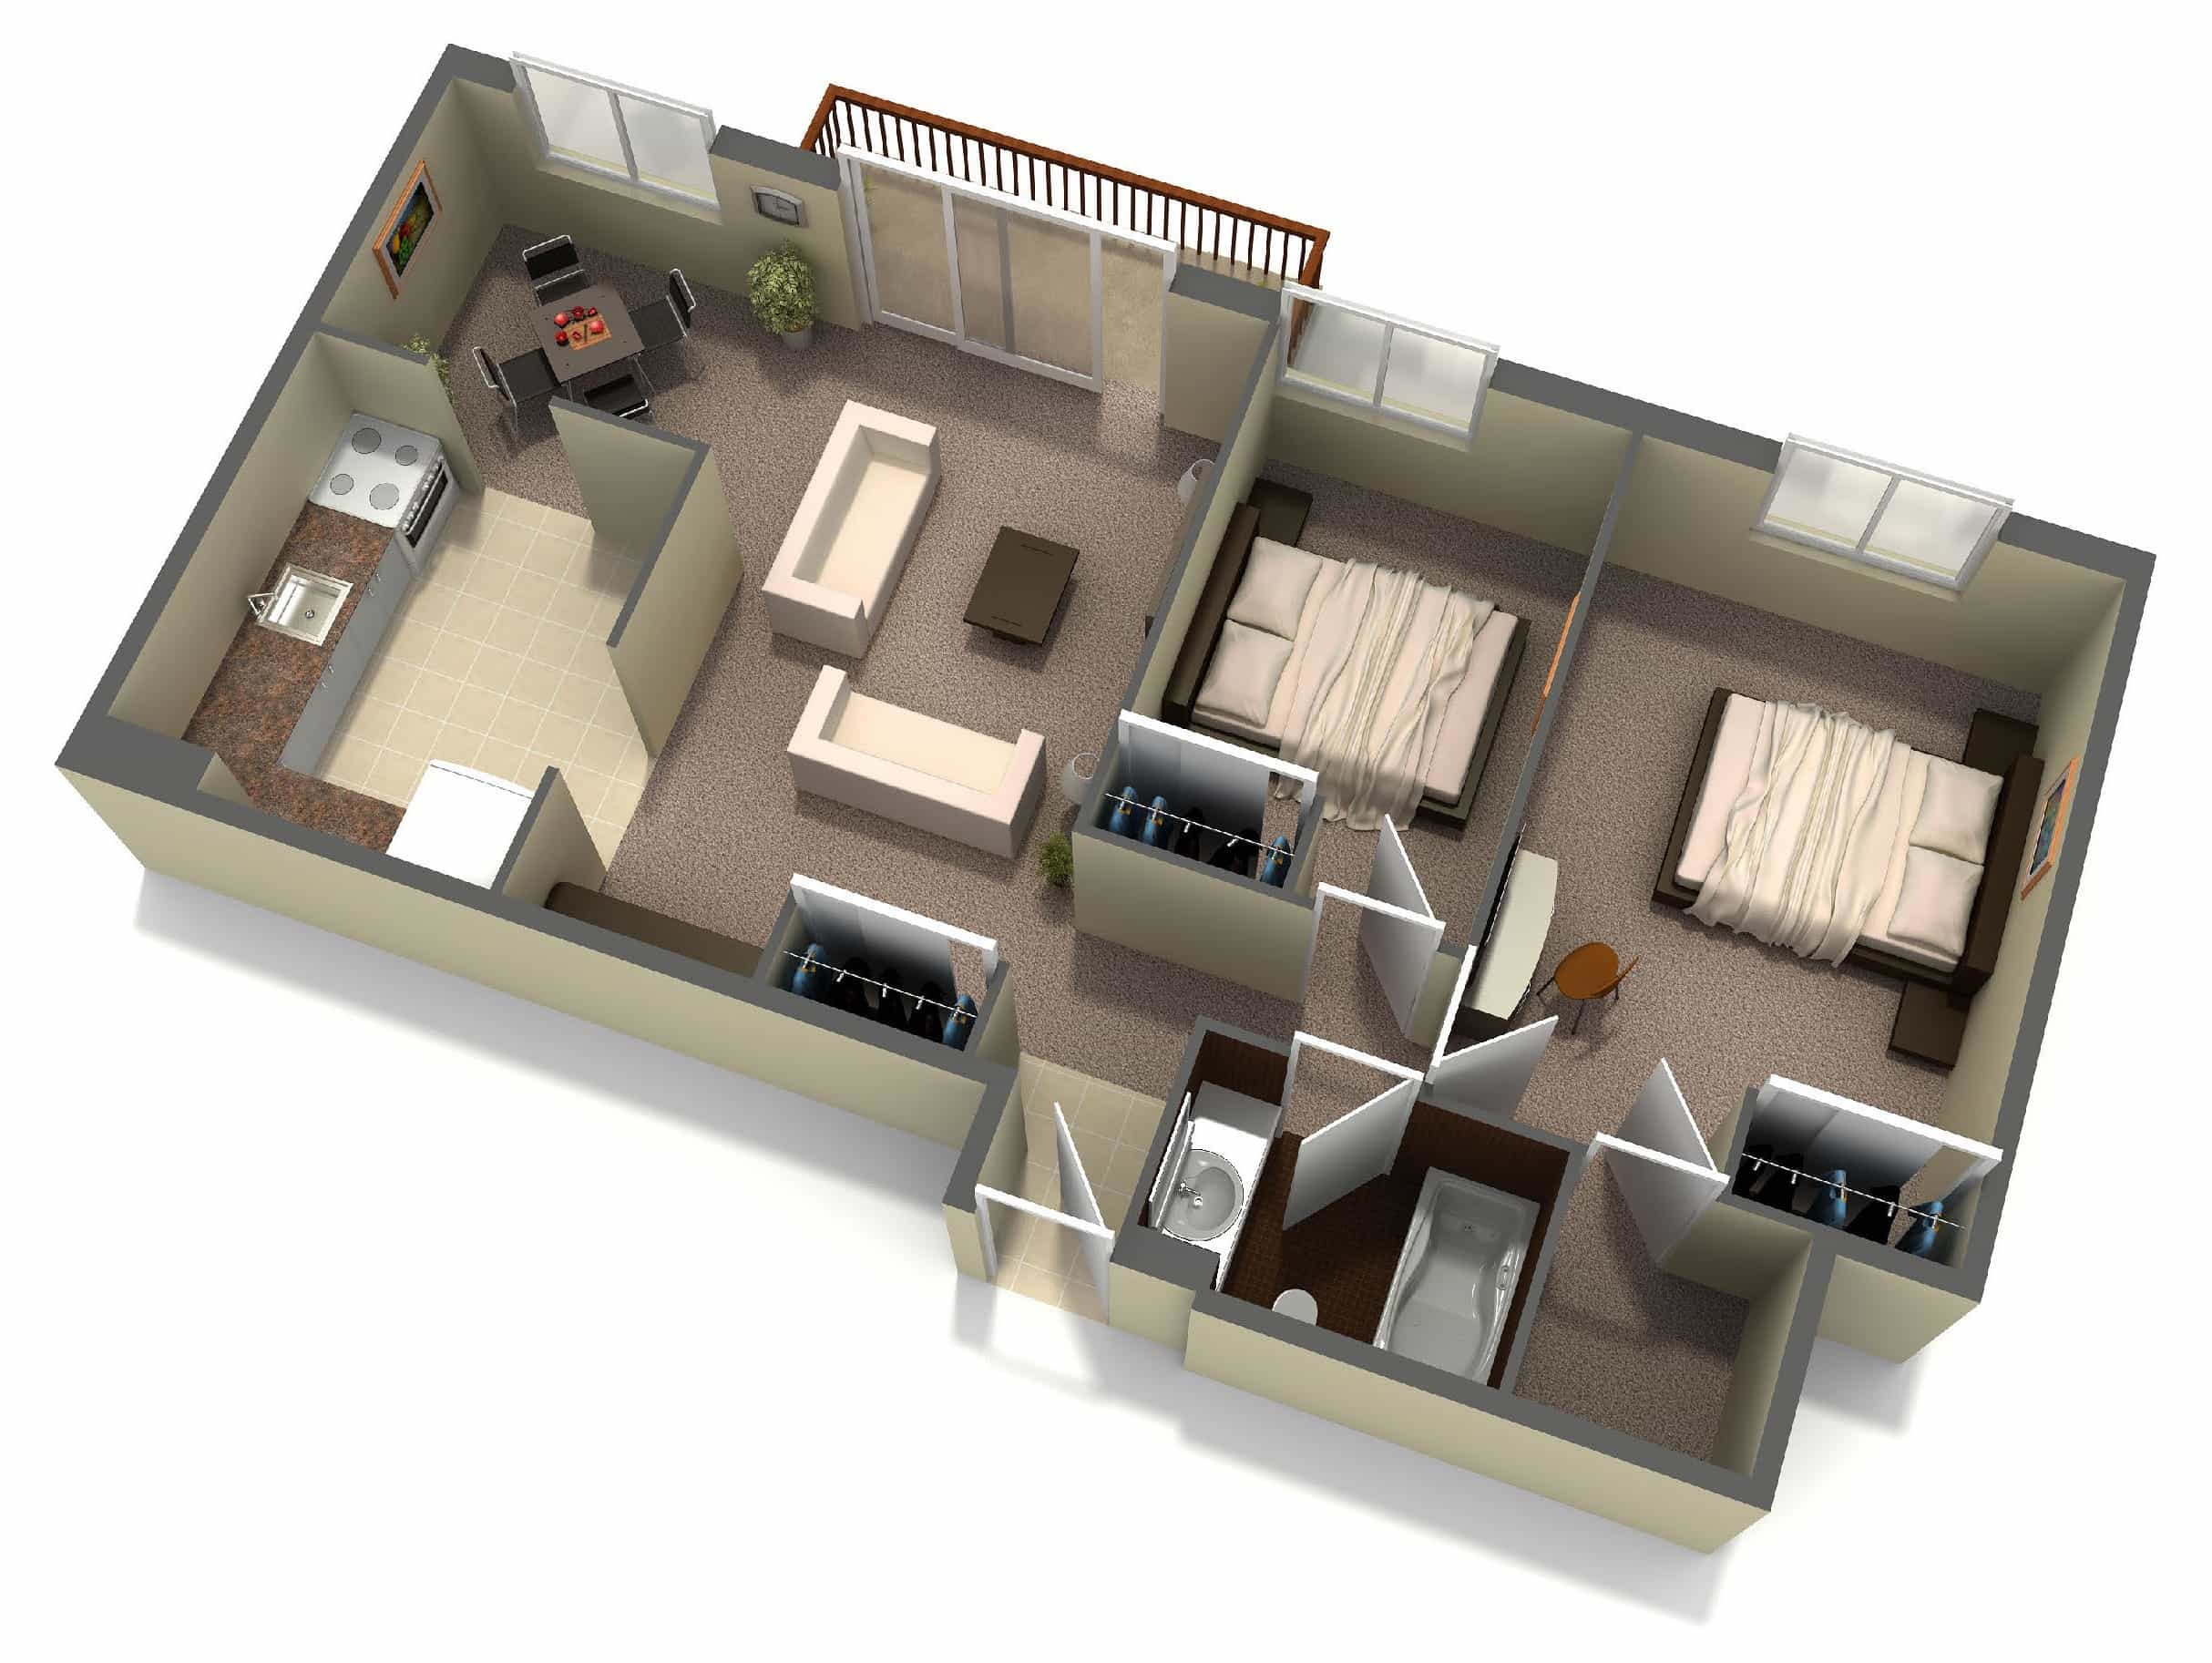 700 square feet house floor plans 3d layout with 2 bedroom